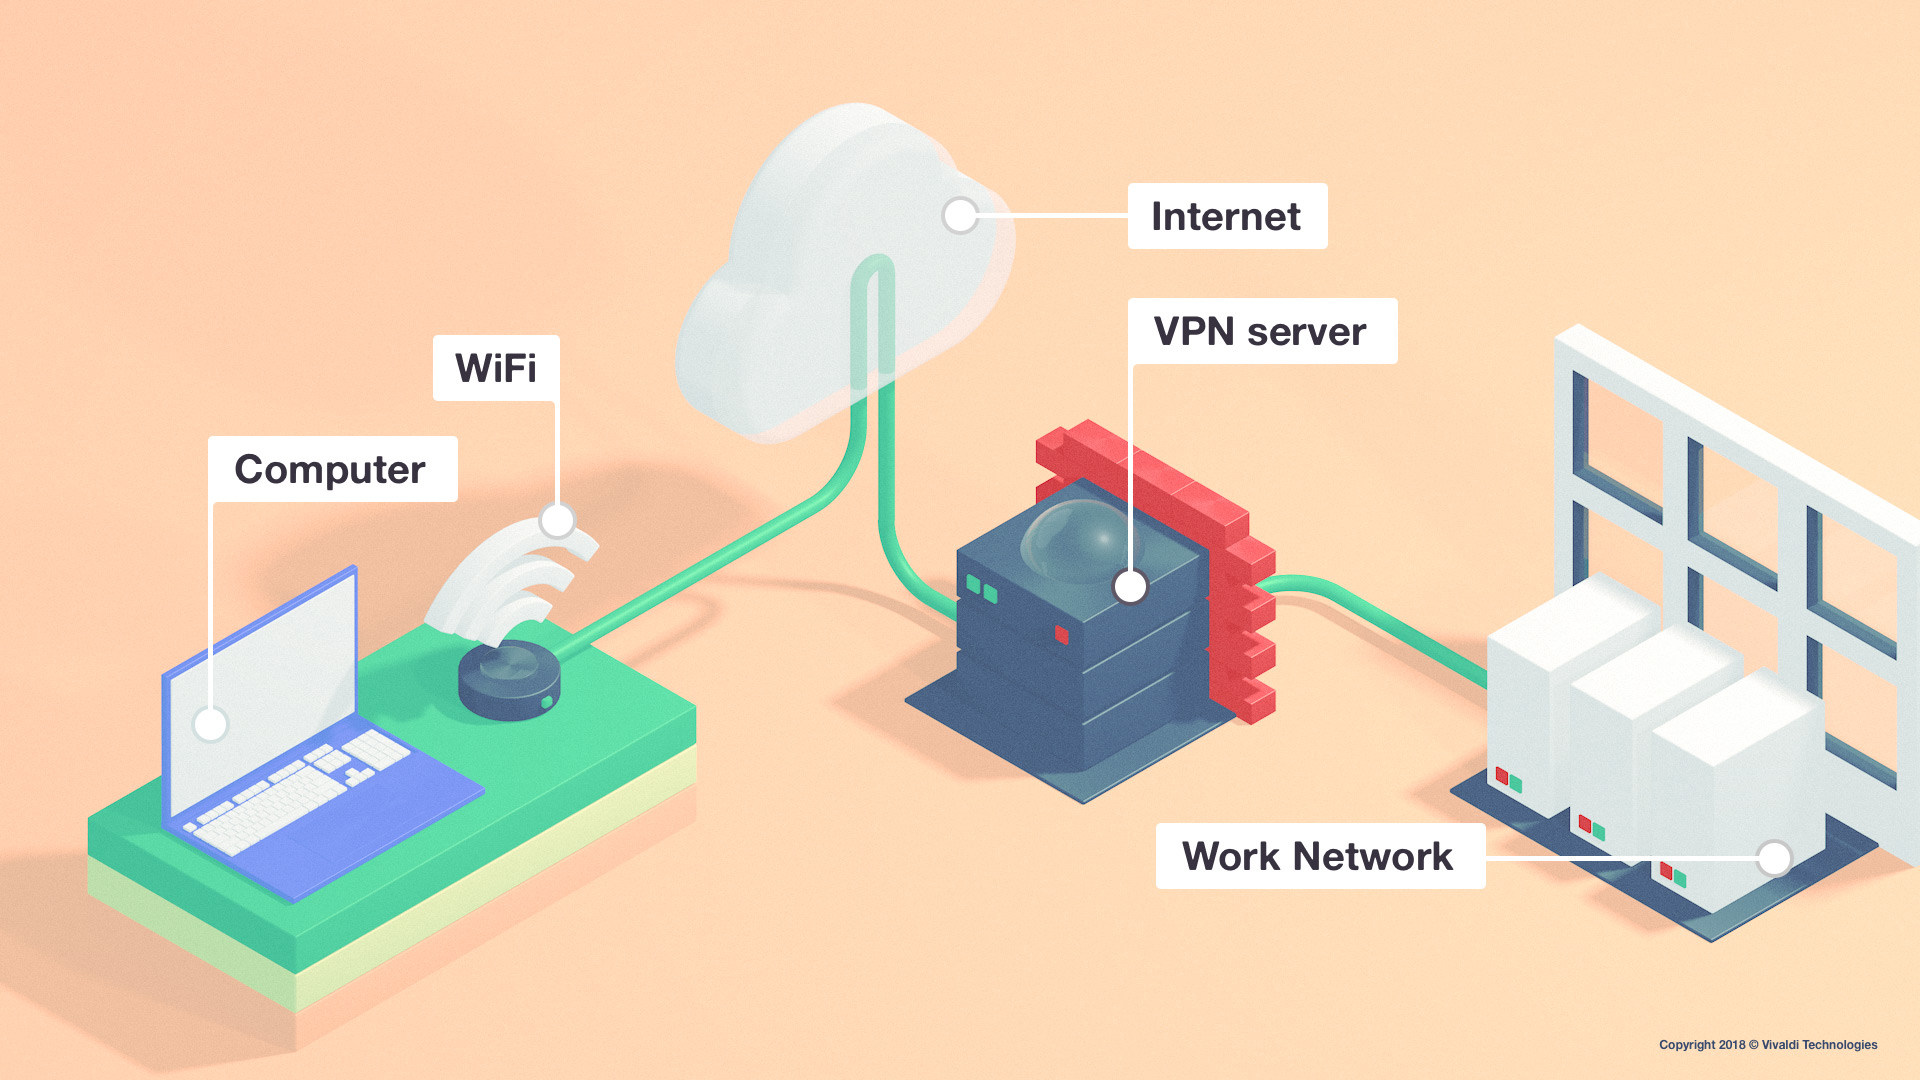 Set up for working remotely with VPN.